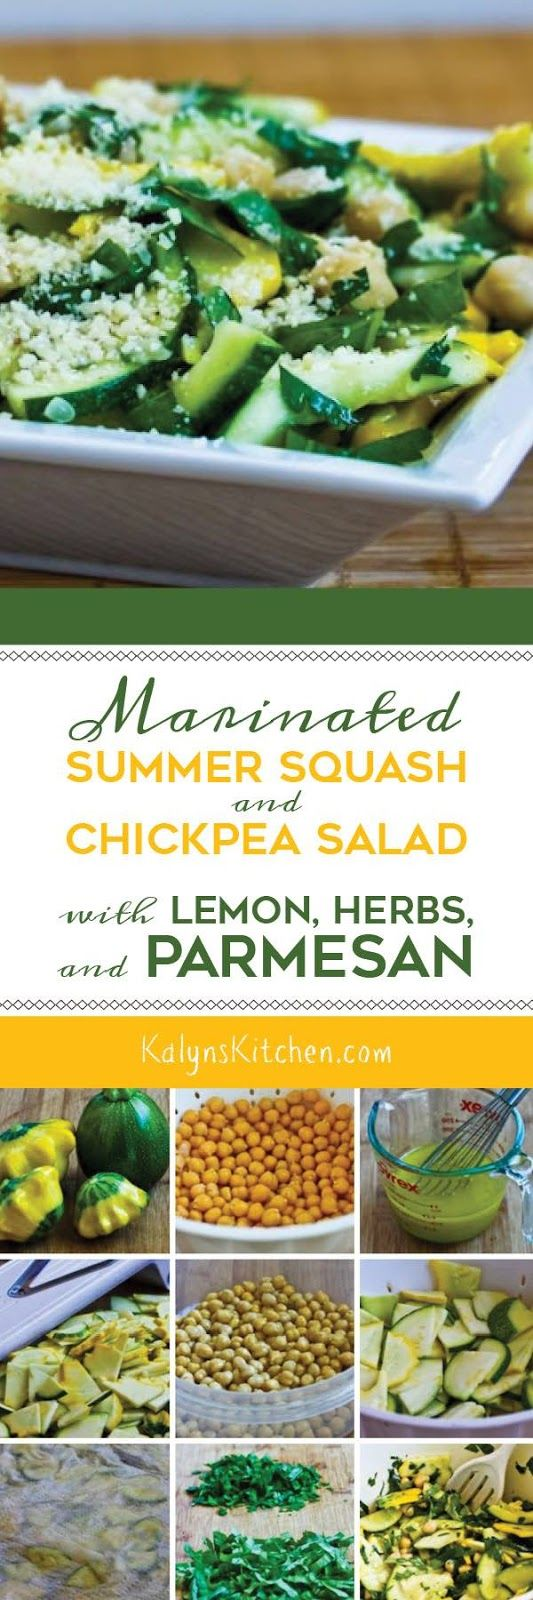 Healthy Recipes : Marinated Summer Squash and Chickpea ...